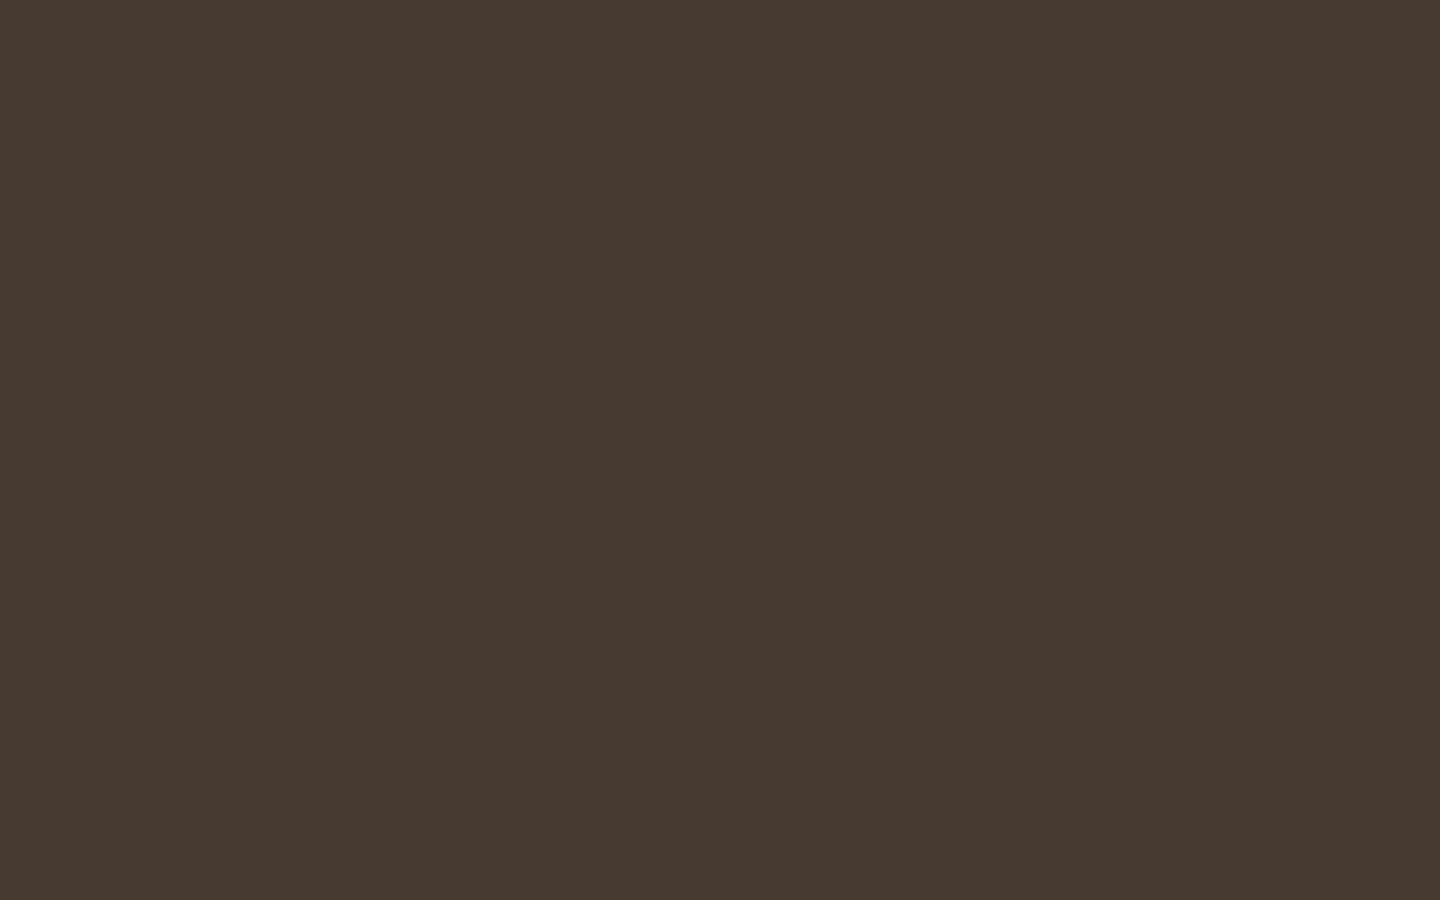 1440x900 Taupe Solid Color Background